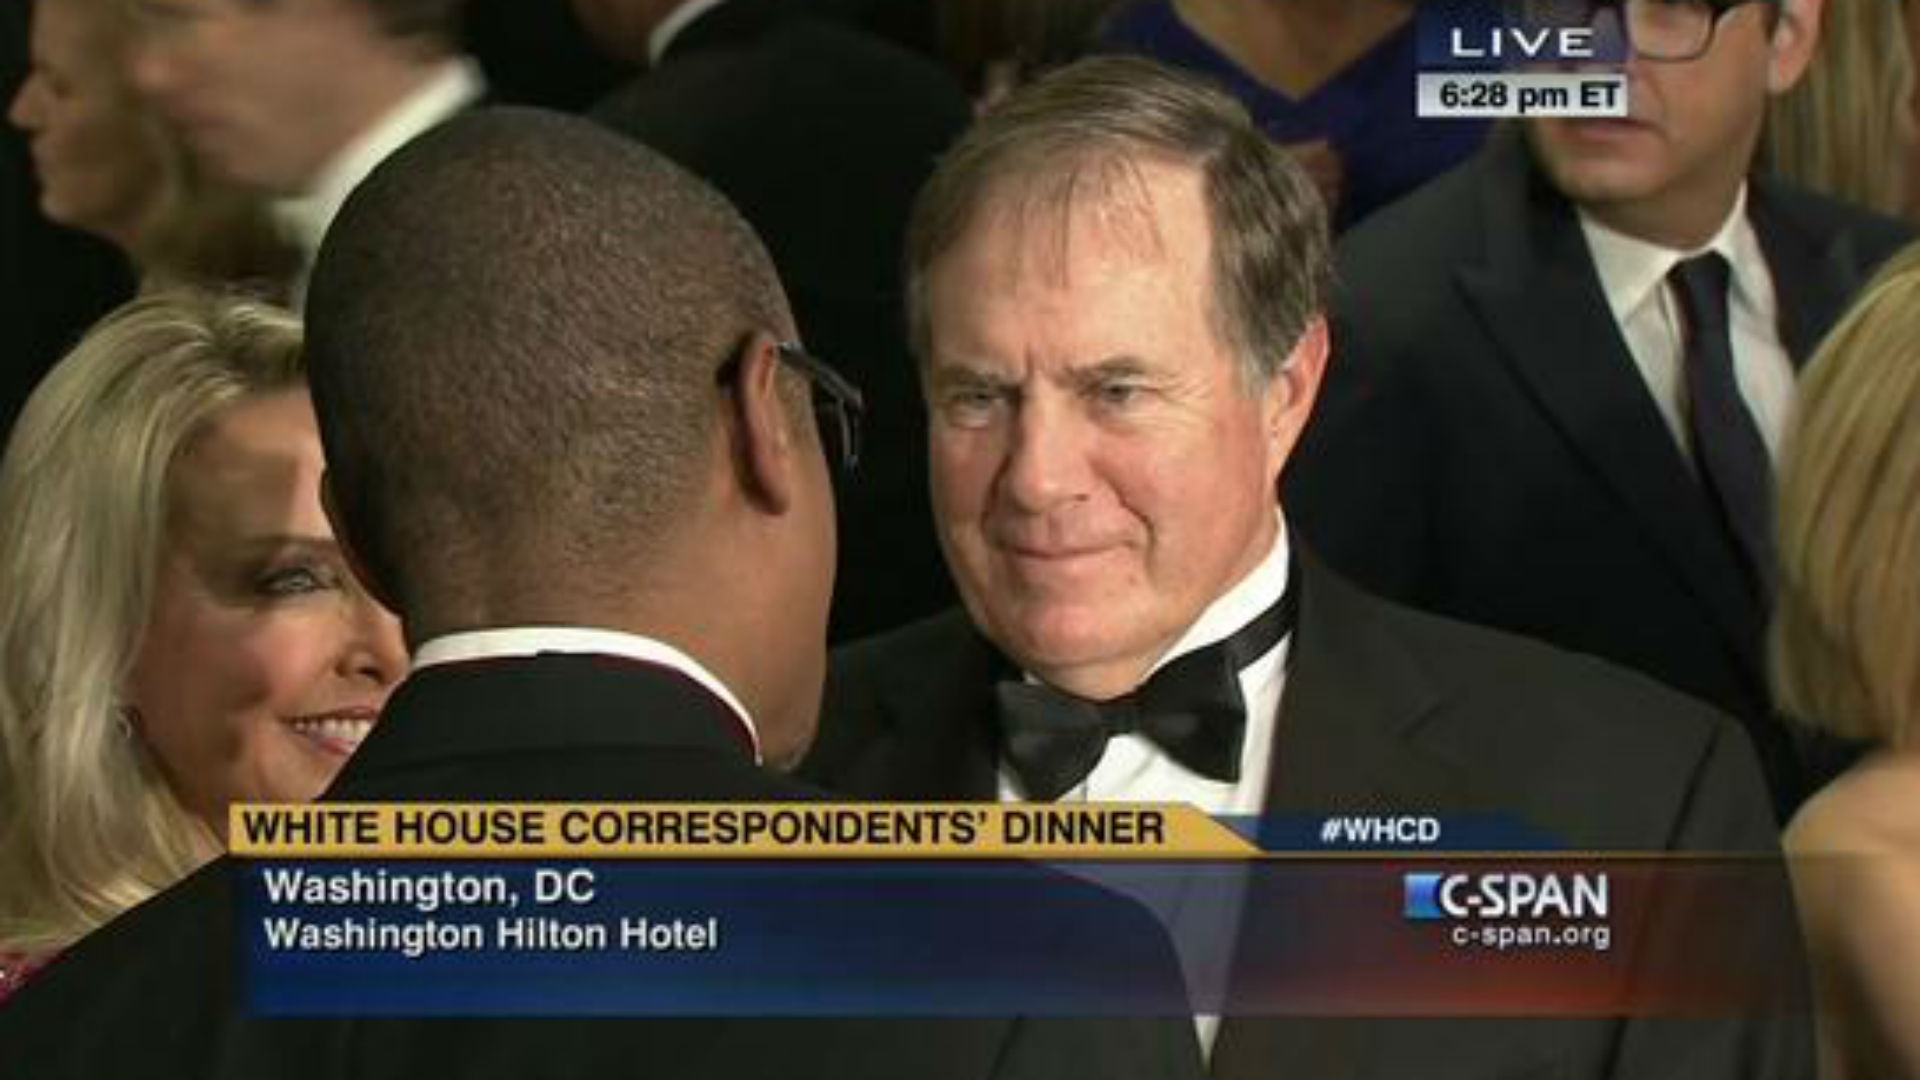 NFL takes over White House Correspondents' dinner